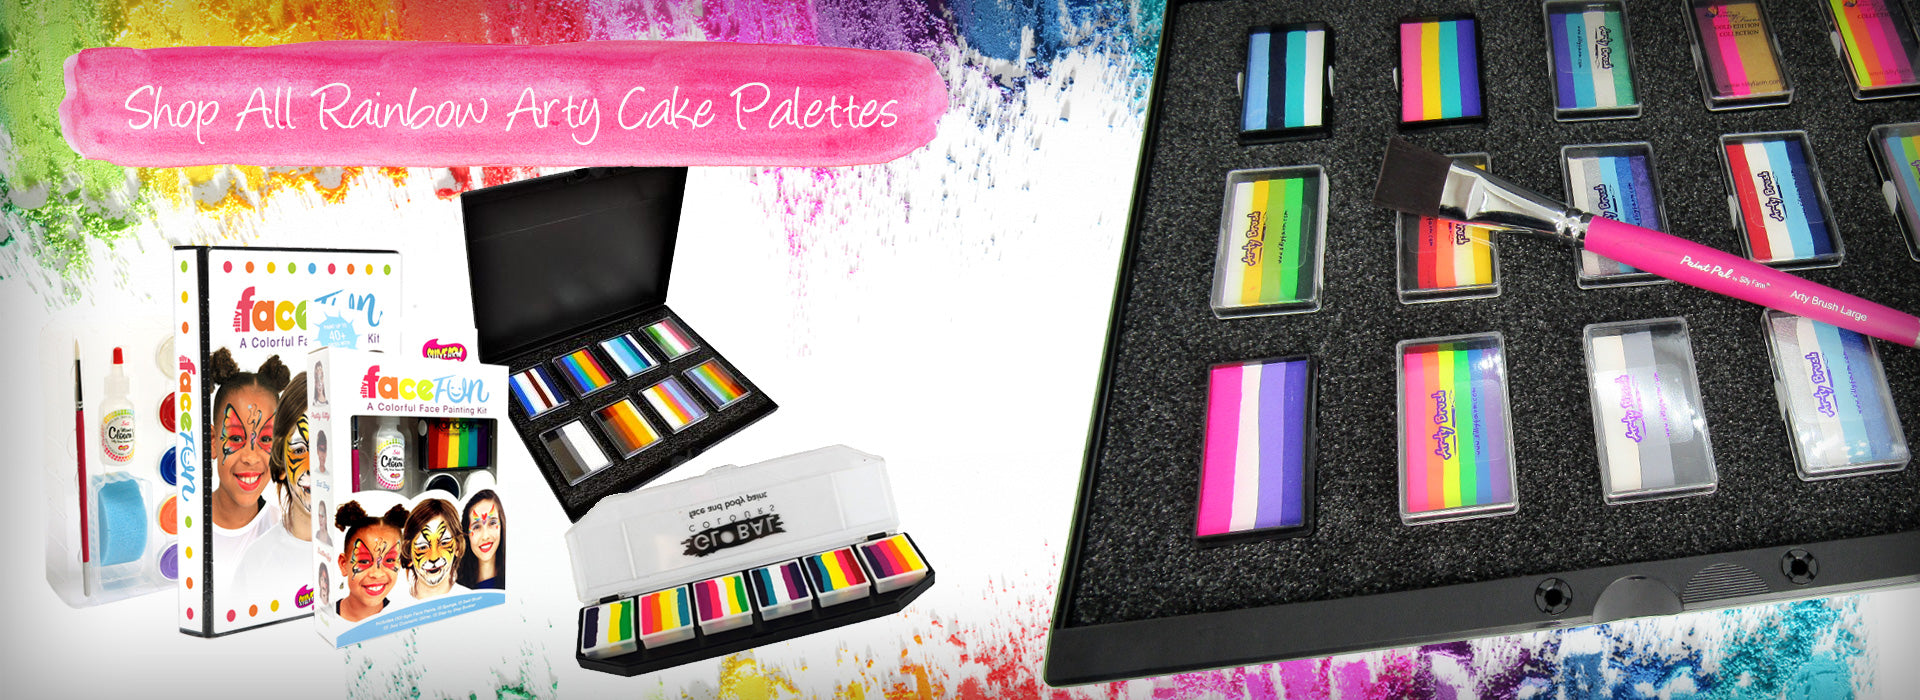 Shop All Rainbow & Arty Cake Palettes